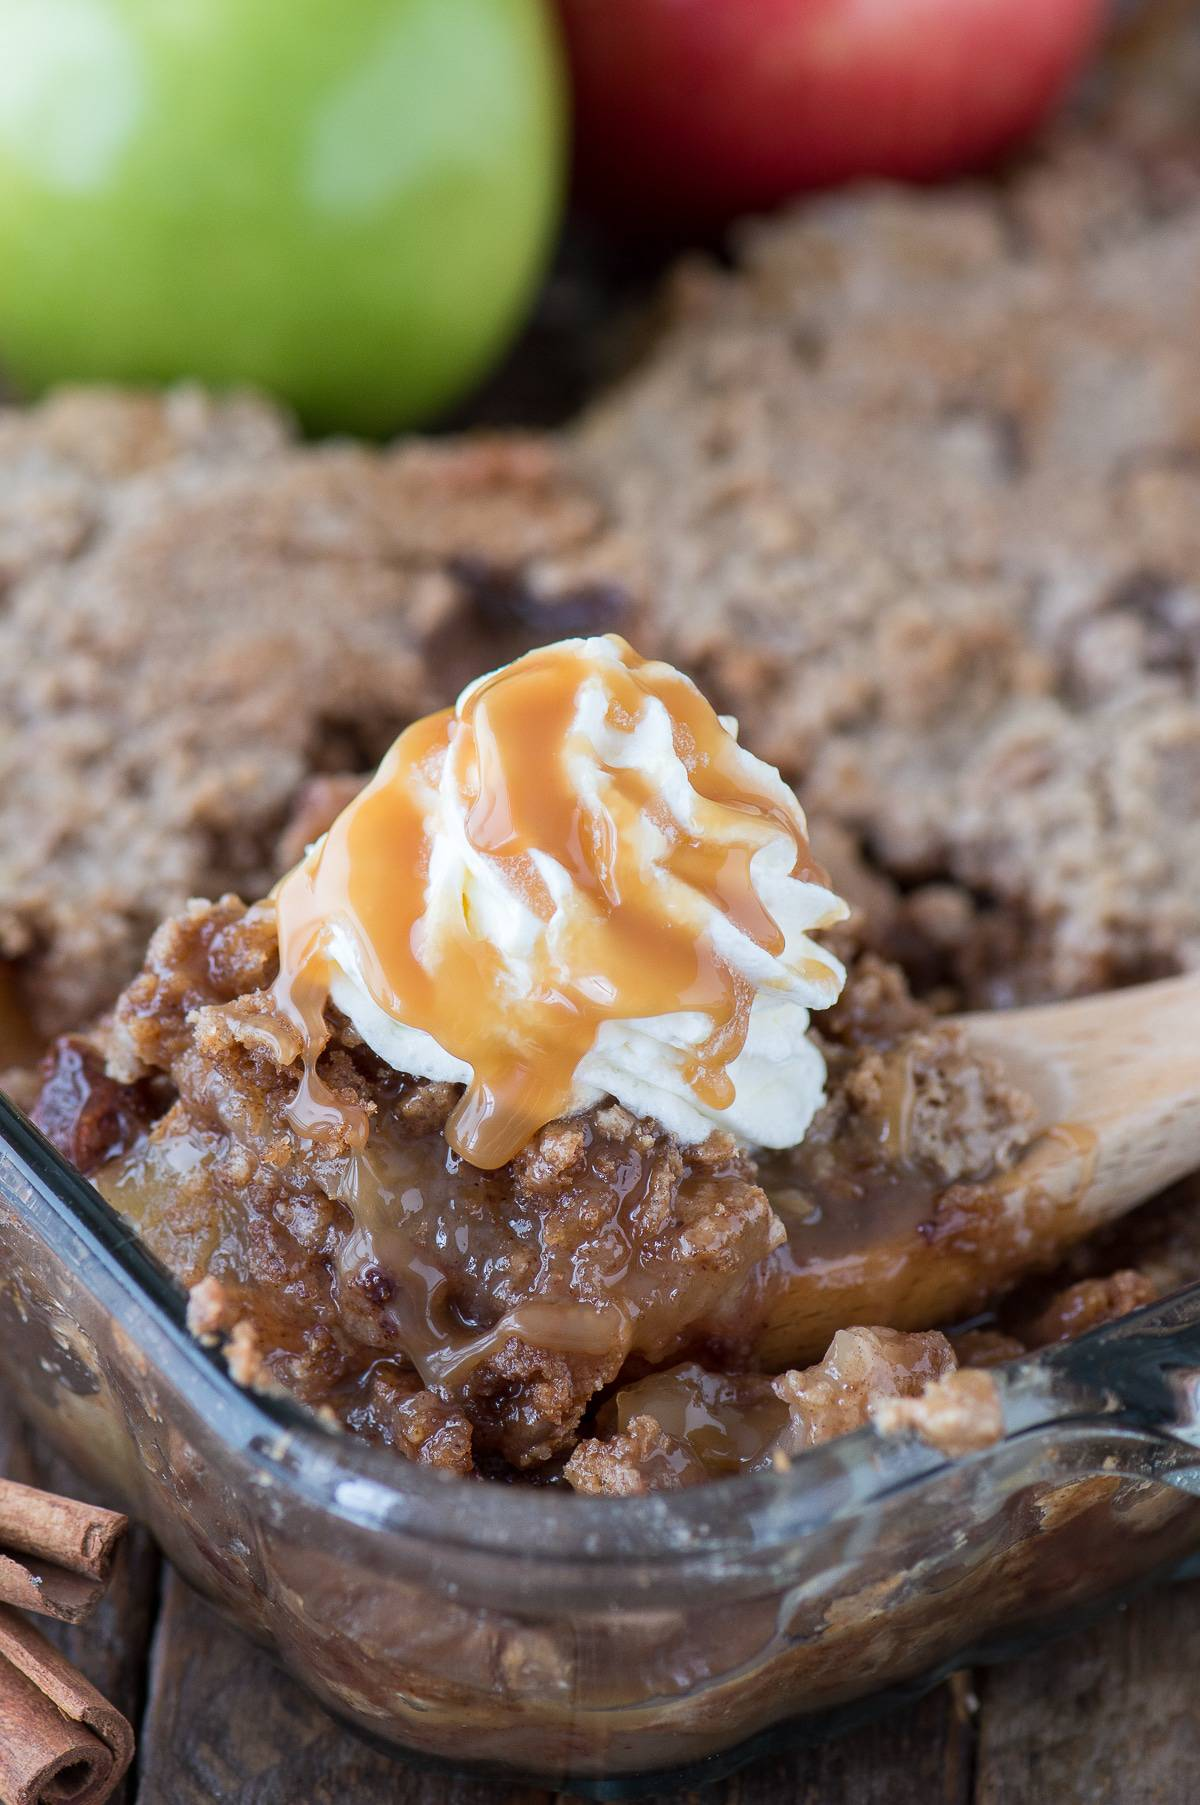 scoop of apple dump cake with whipped cream and caramel drizzle on wooden spatula